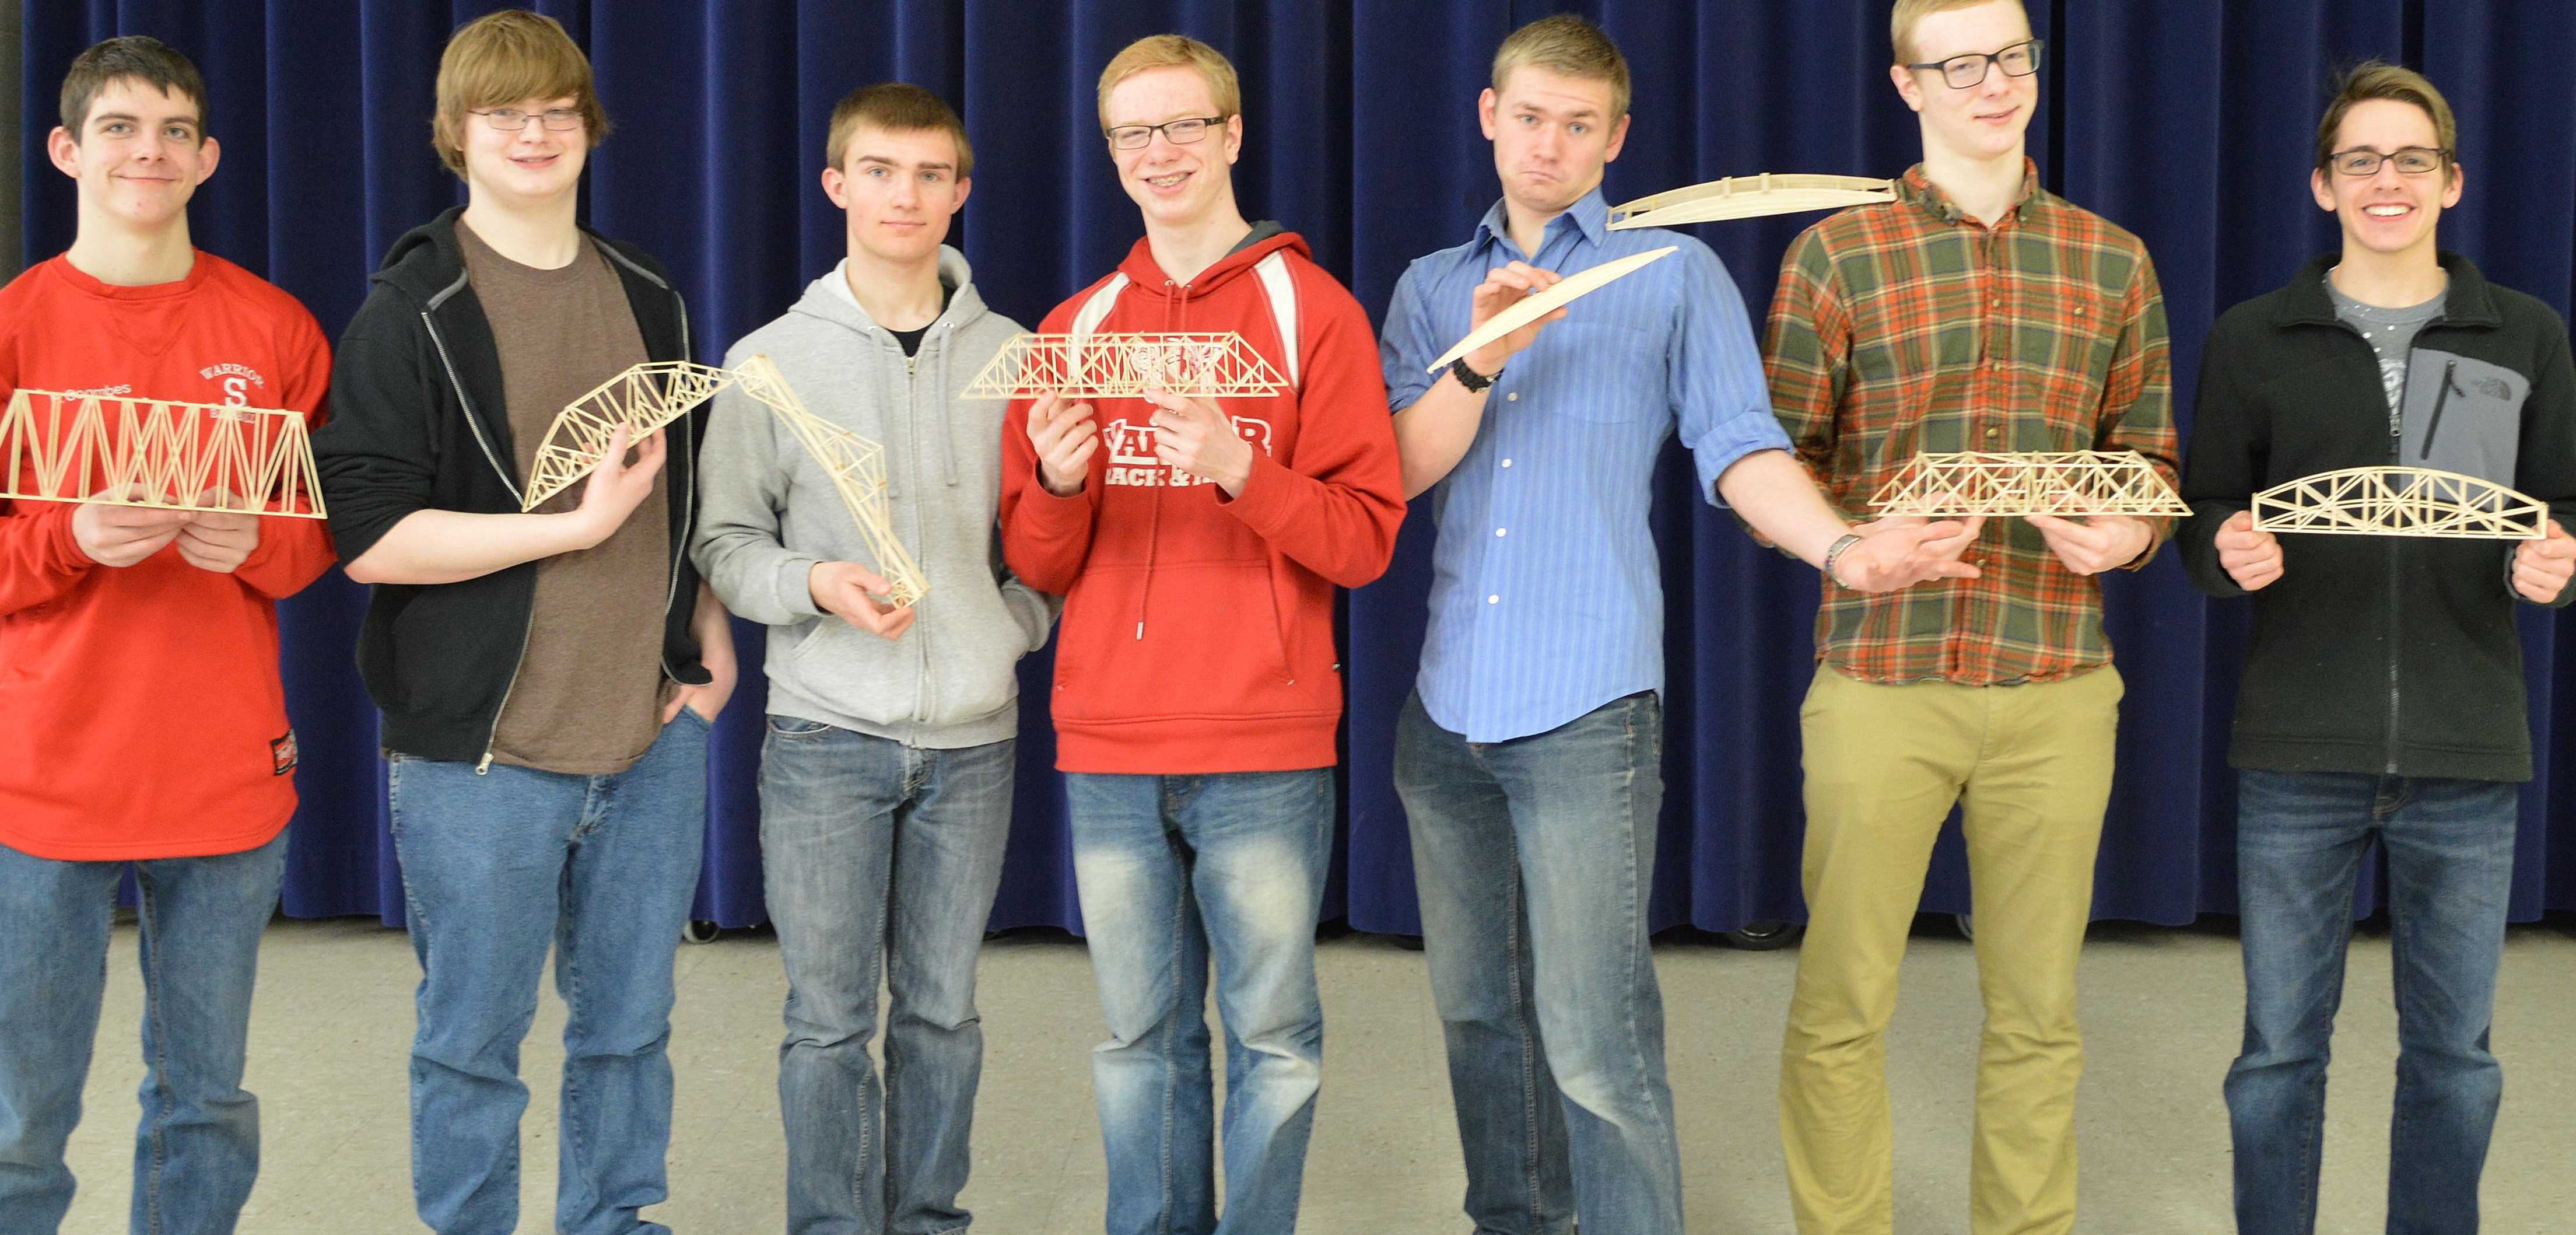 Students in the competition posing with their bridges.